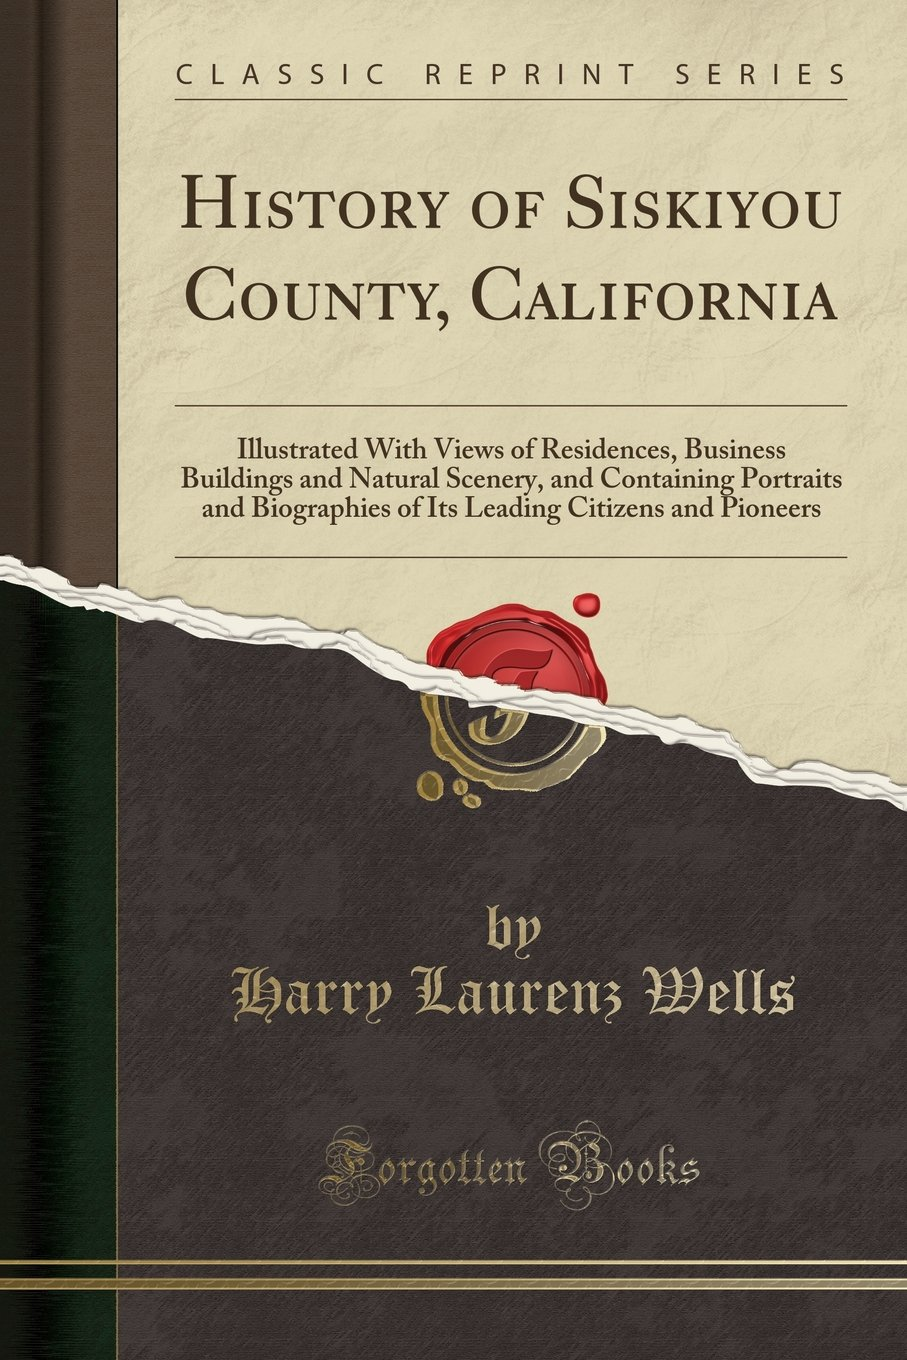 Download History of Siskiyou County, California: Illustrated With Views of Residences, Business Buildings and Natural Scenery, and Containing Portraits and ... Citizens and Pioneers (Classic Reprint) ebook